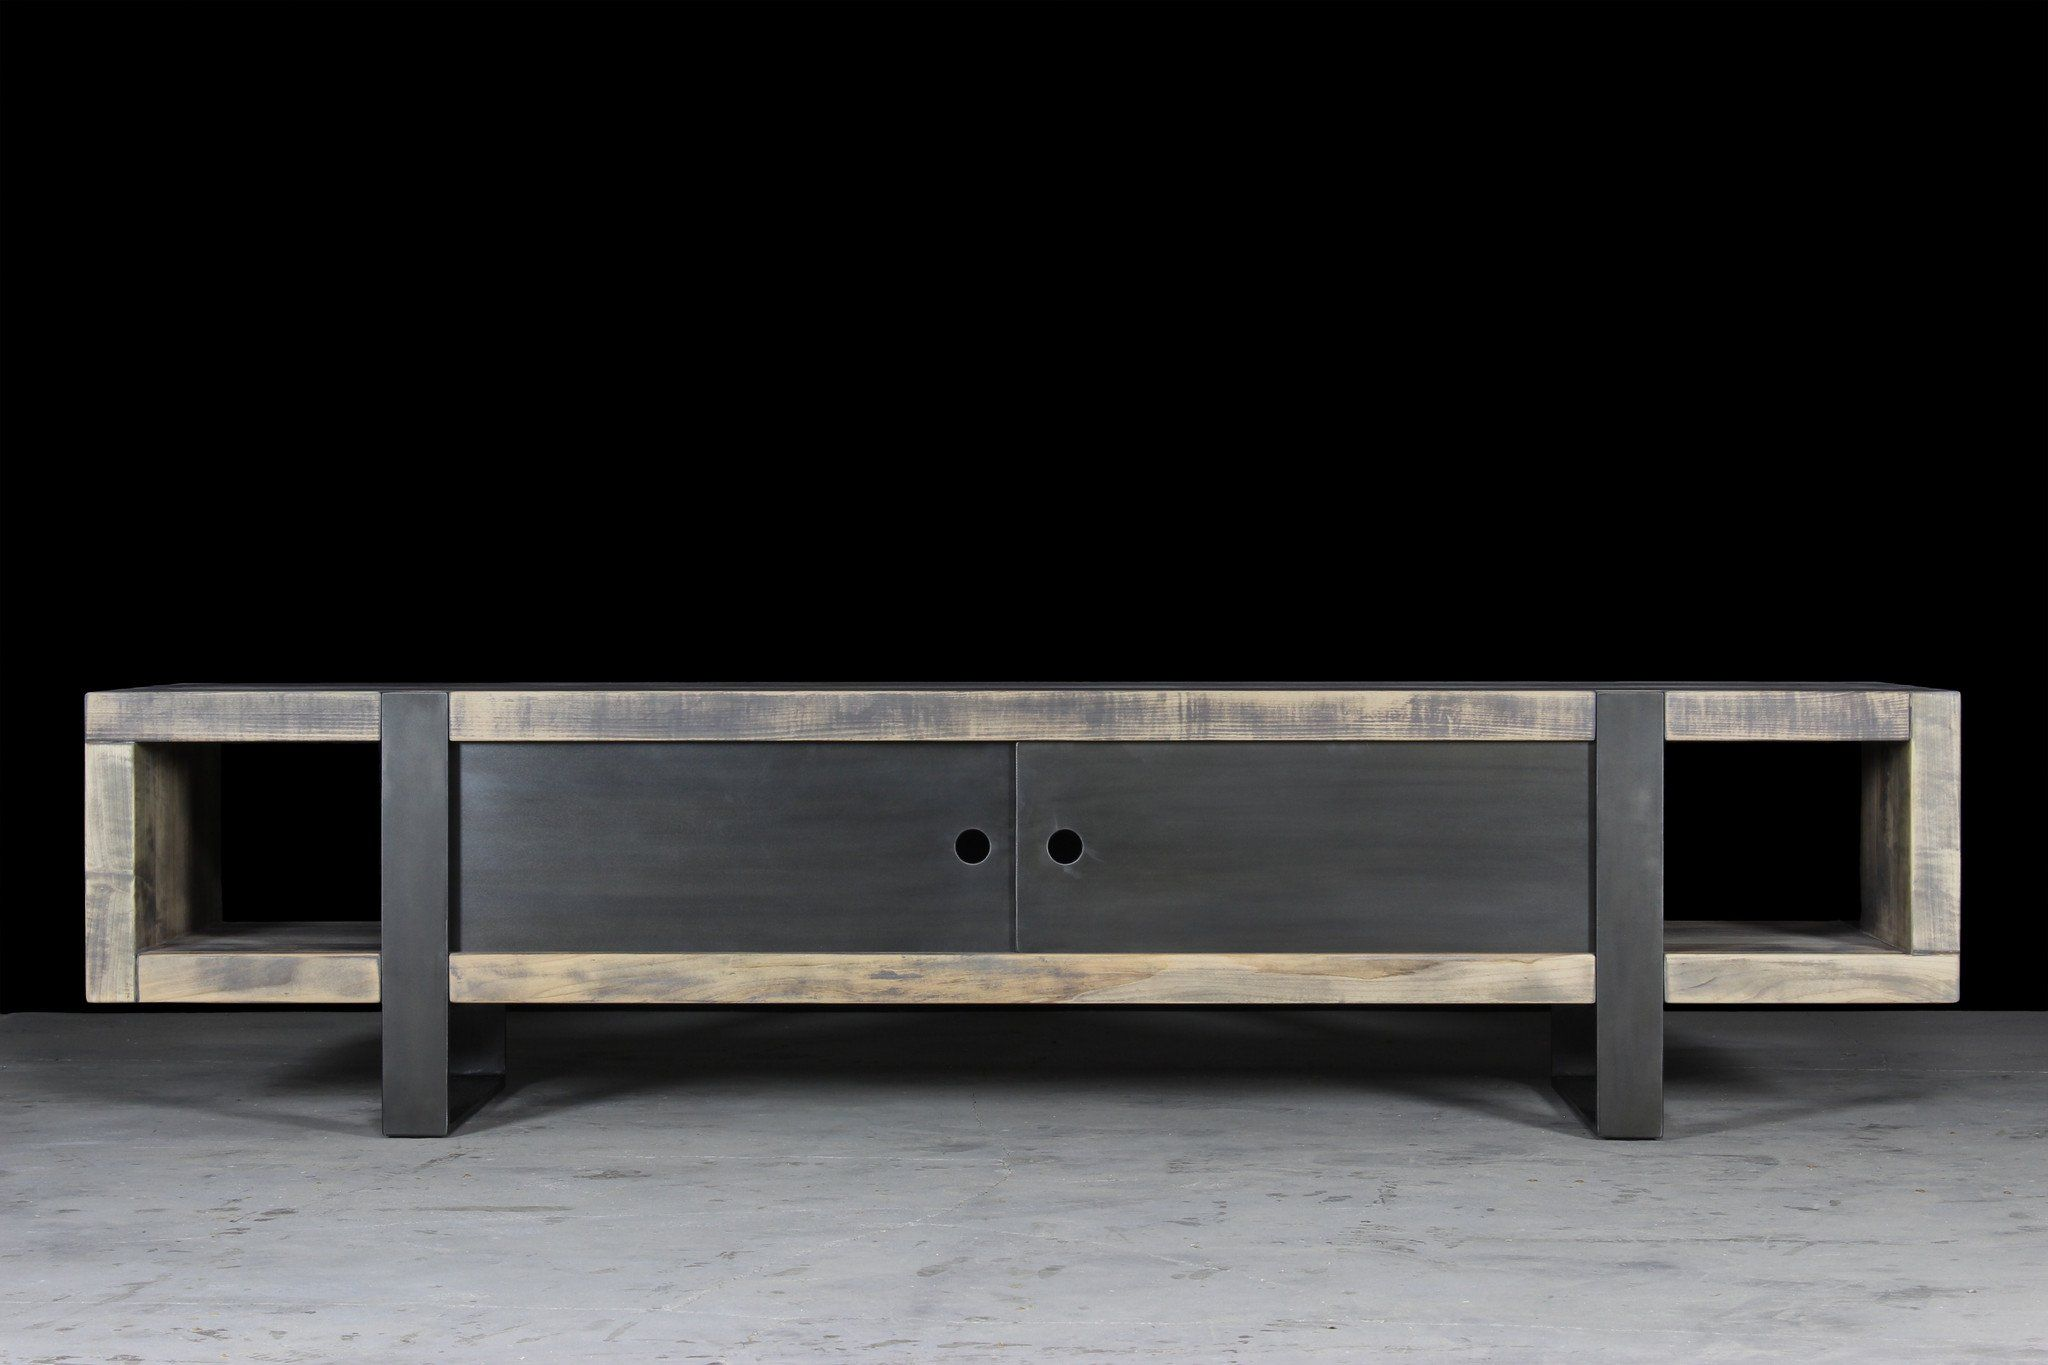 7 Media Console - Worn Maple Wood Finish With Waxed